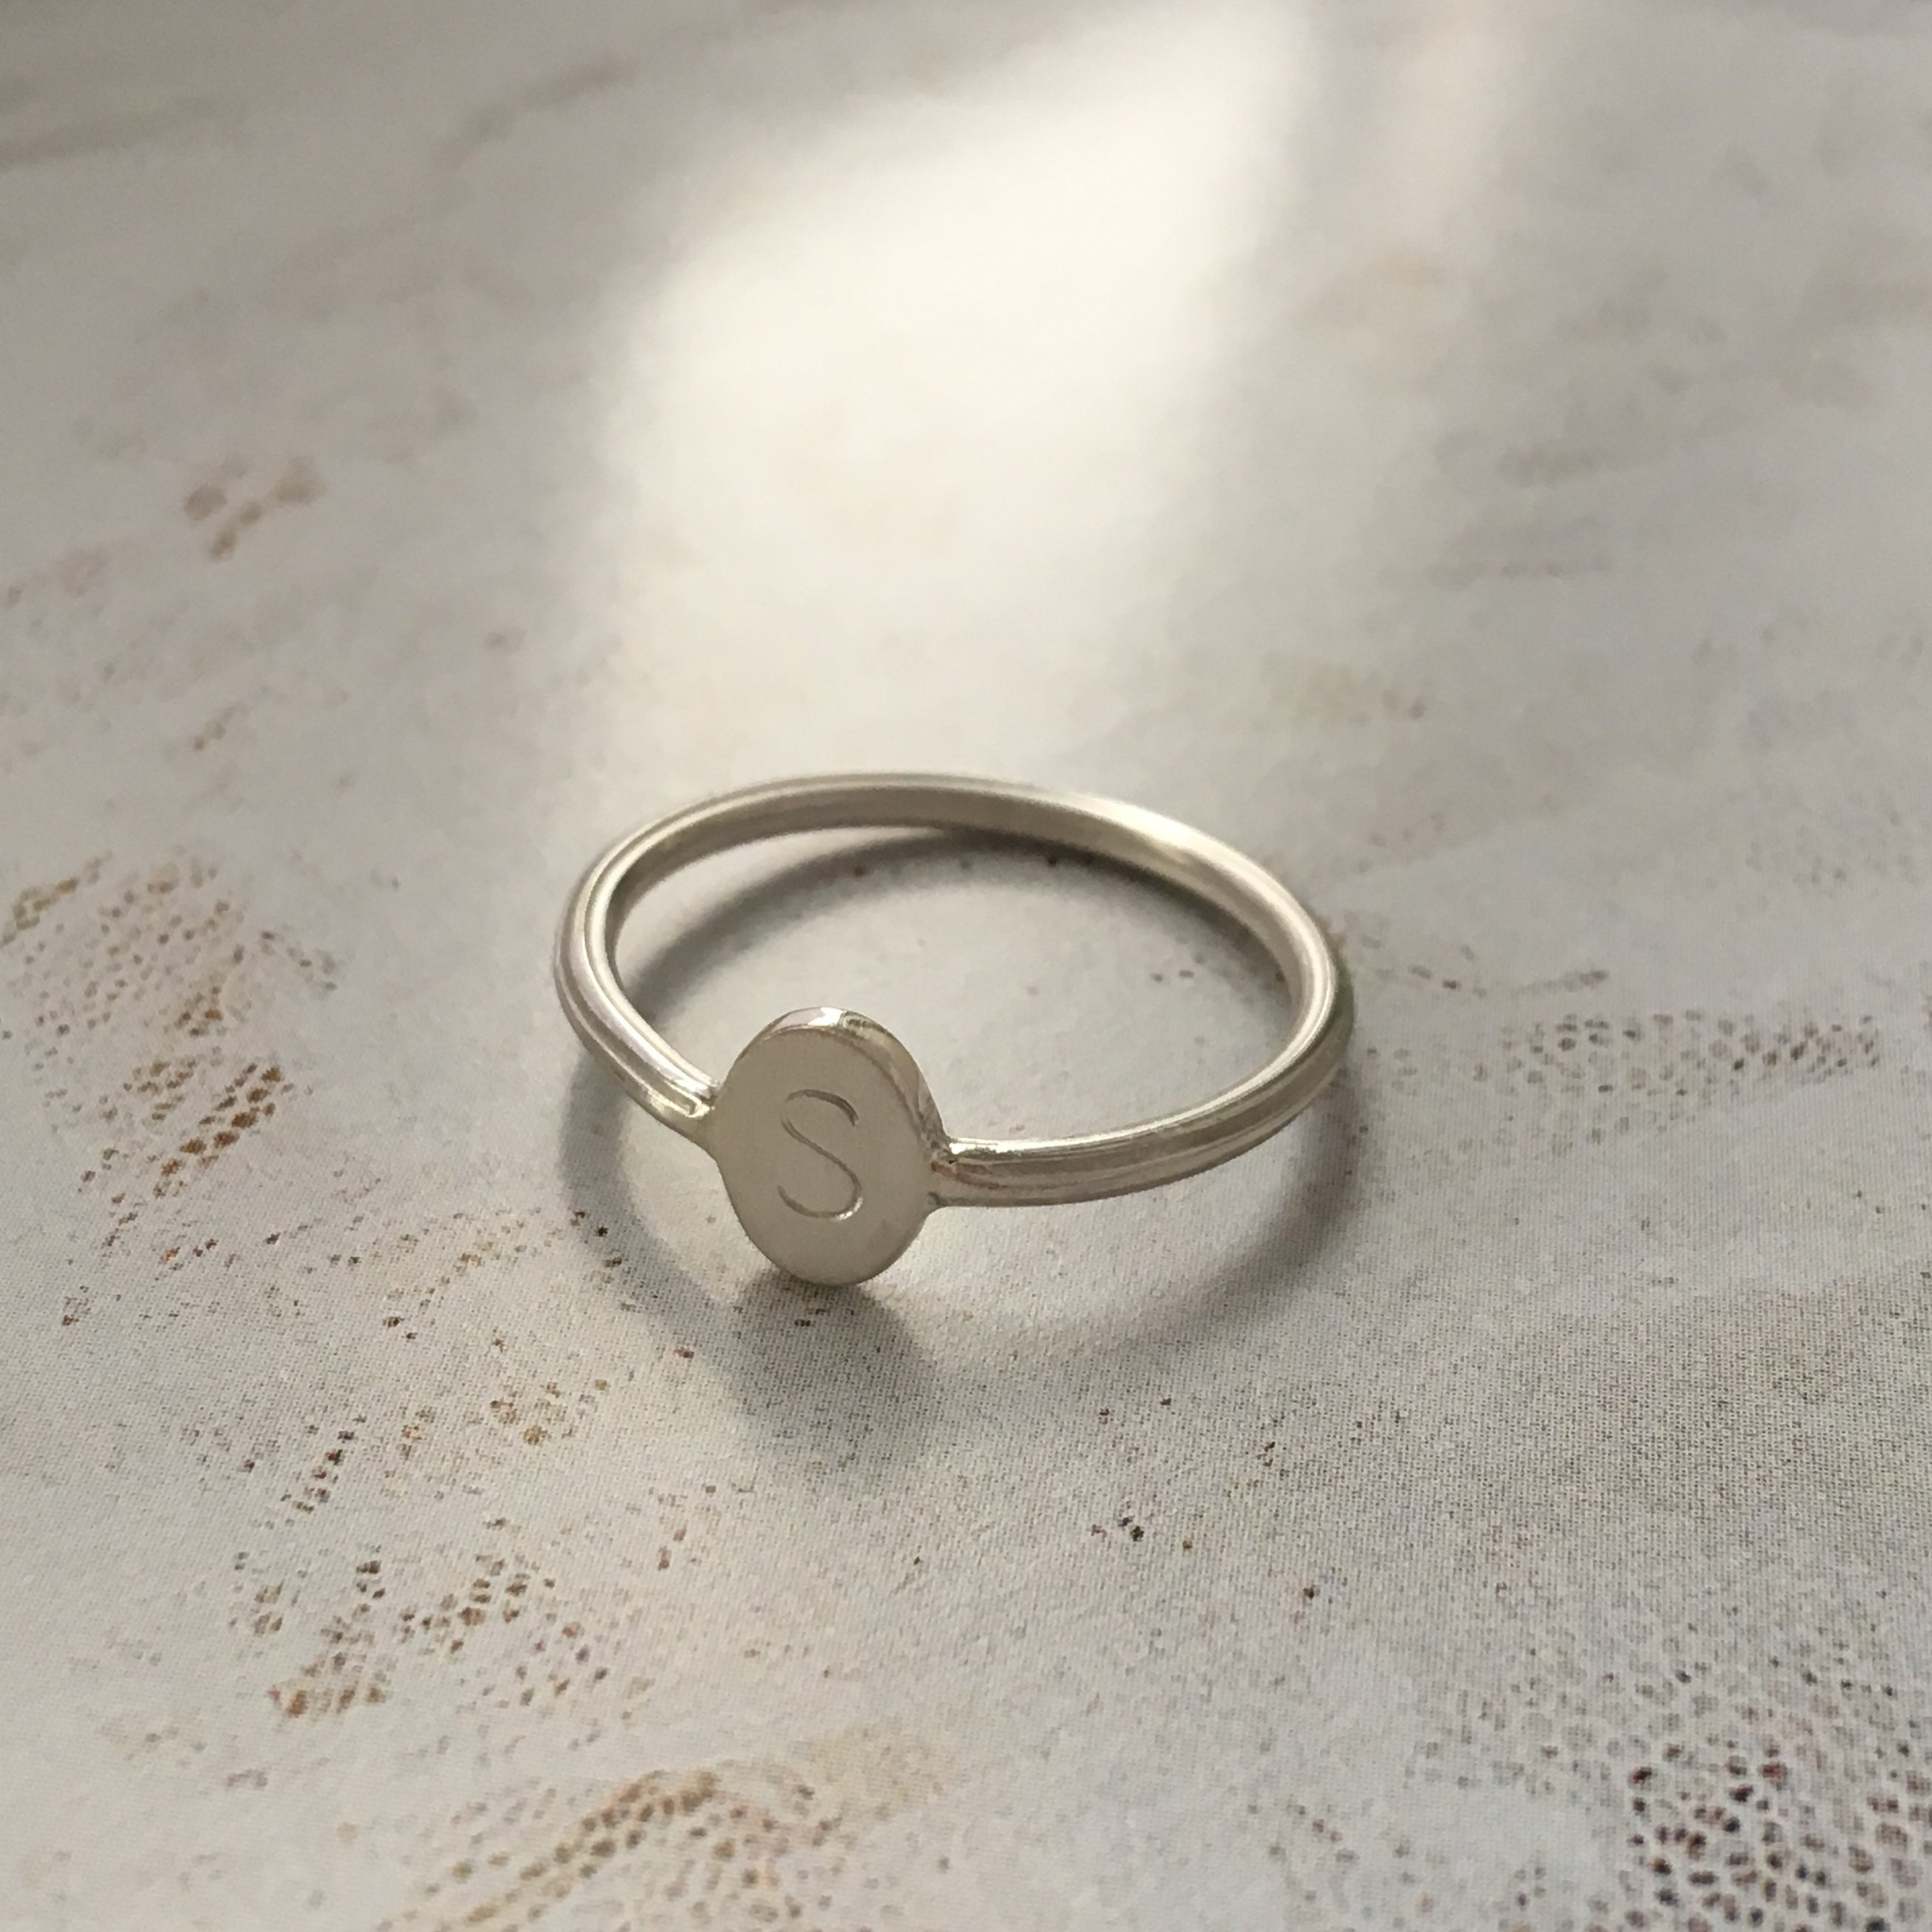 Forget Me Not ring, silver